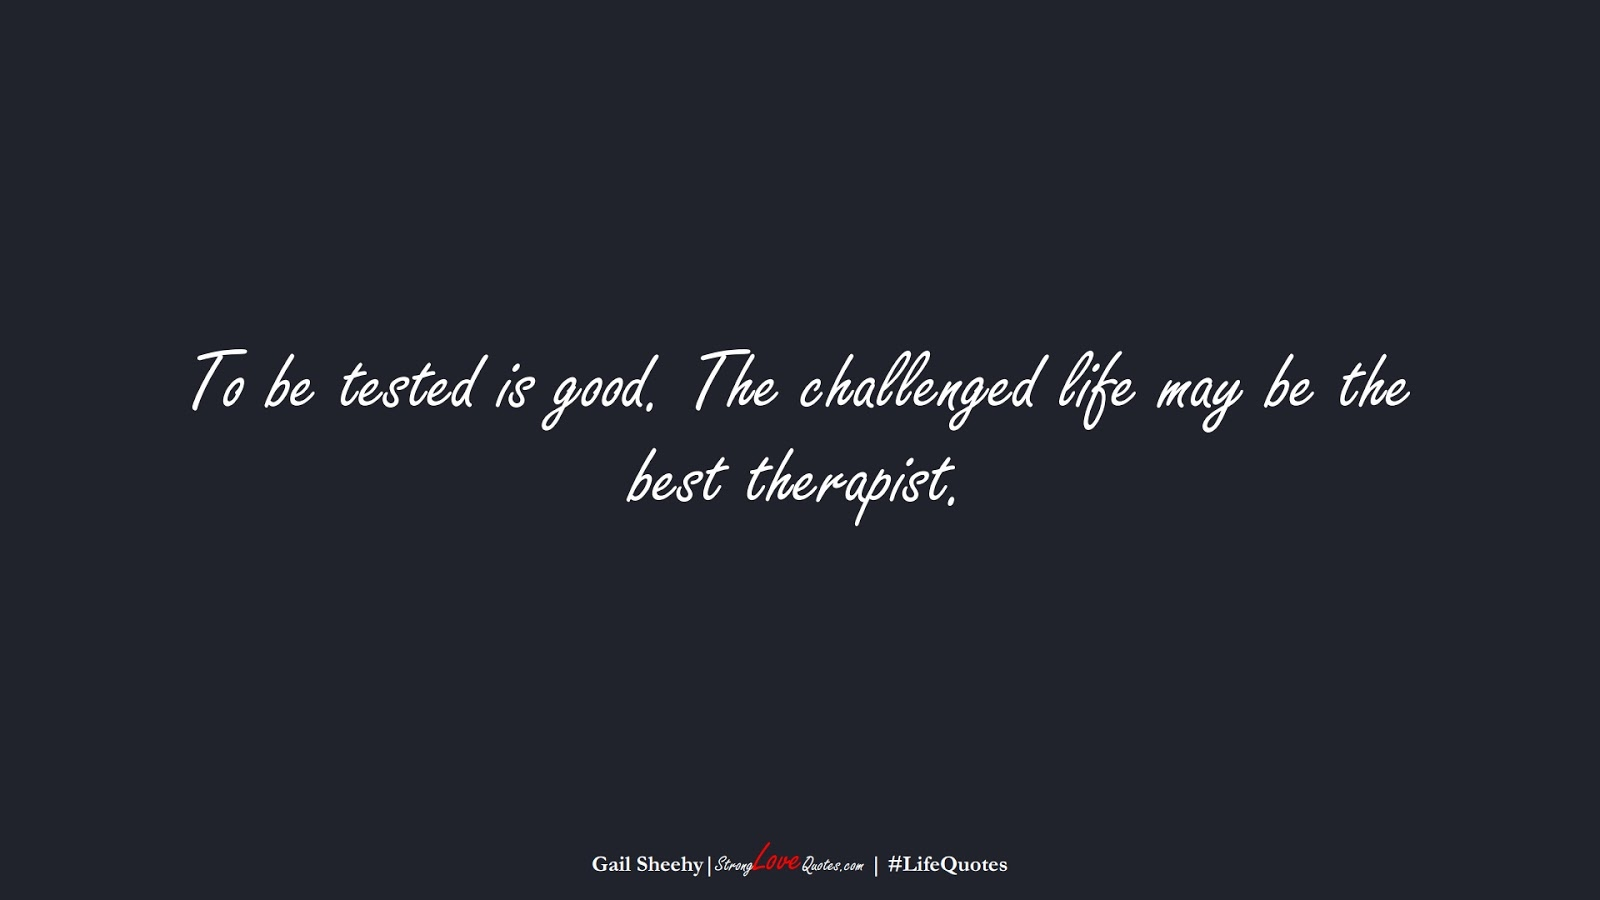 To be tested is good. The challenged life may be the best therapist. (Gail Sheehy);  #LifeQuotes